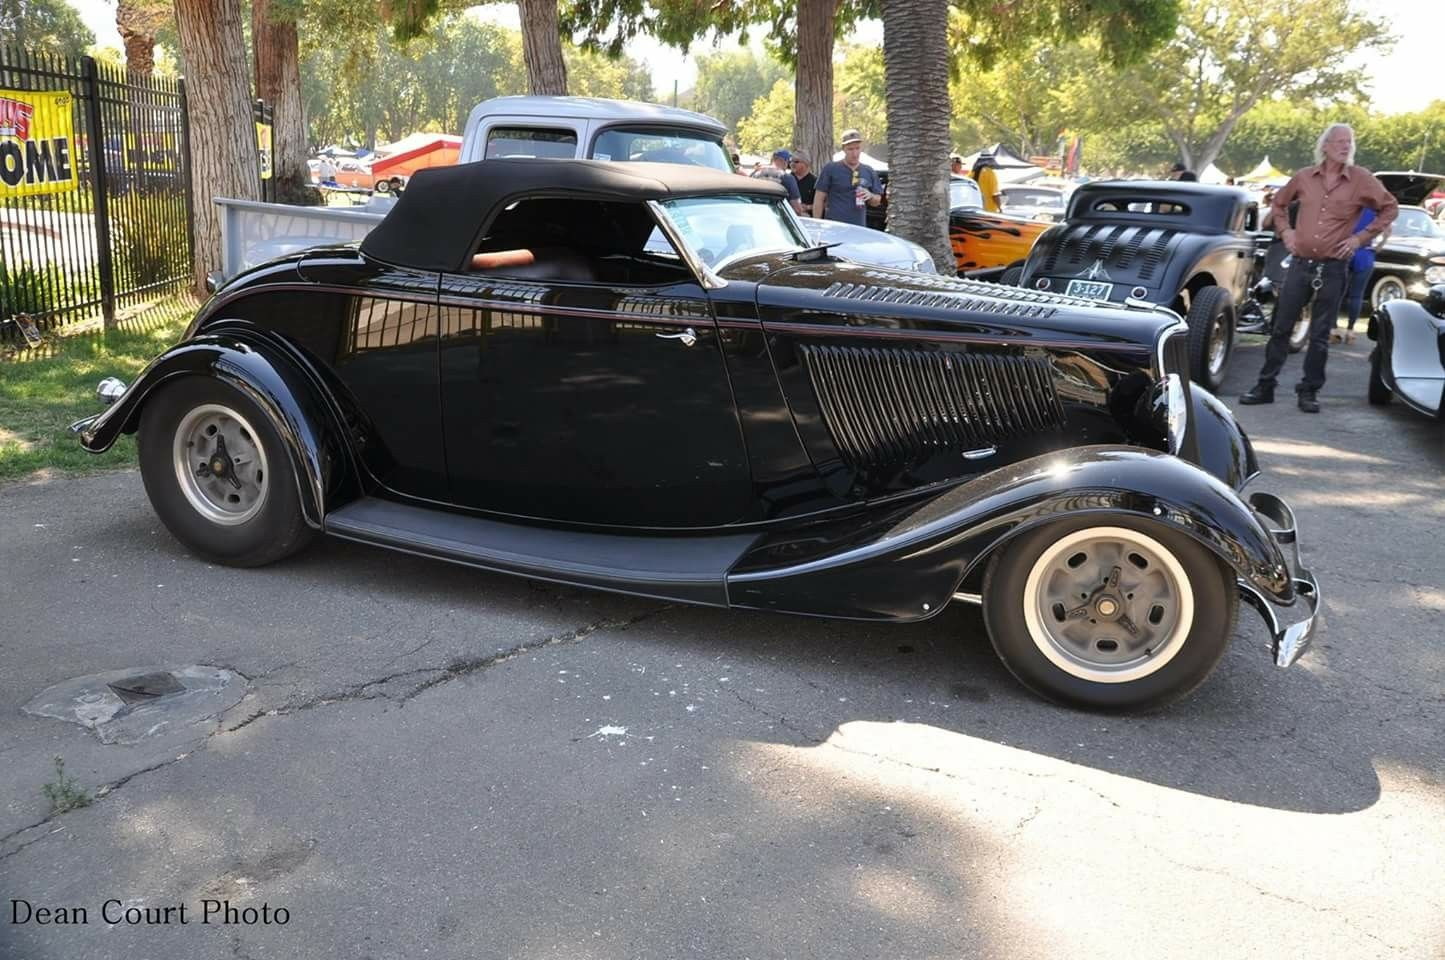 34 Ford | Real rod | Pinterest | Ford and Cars